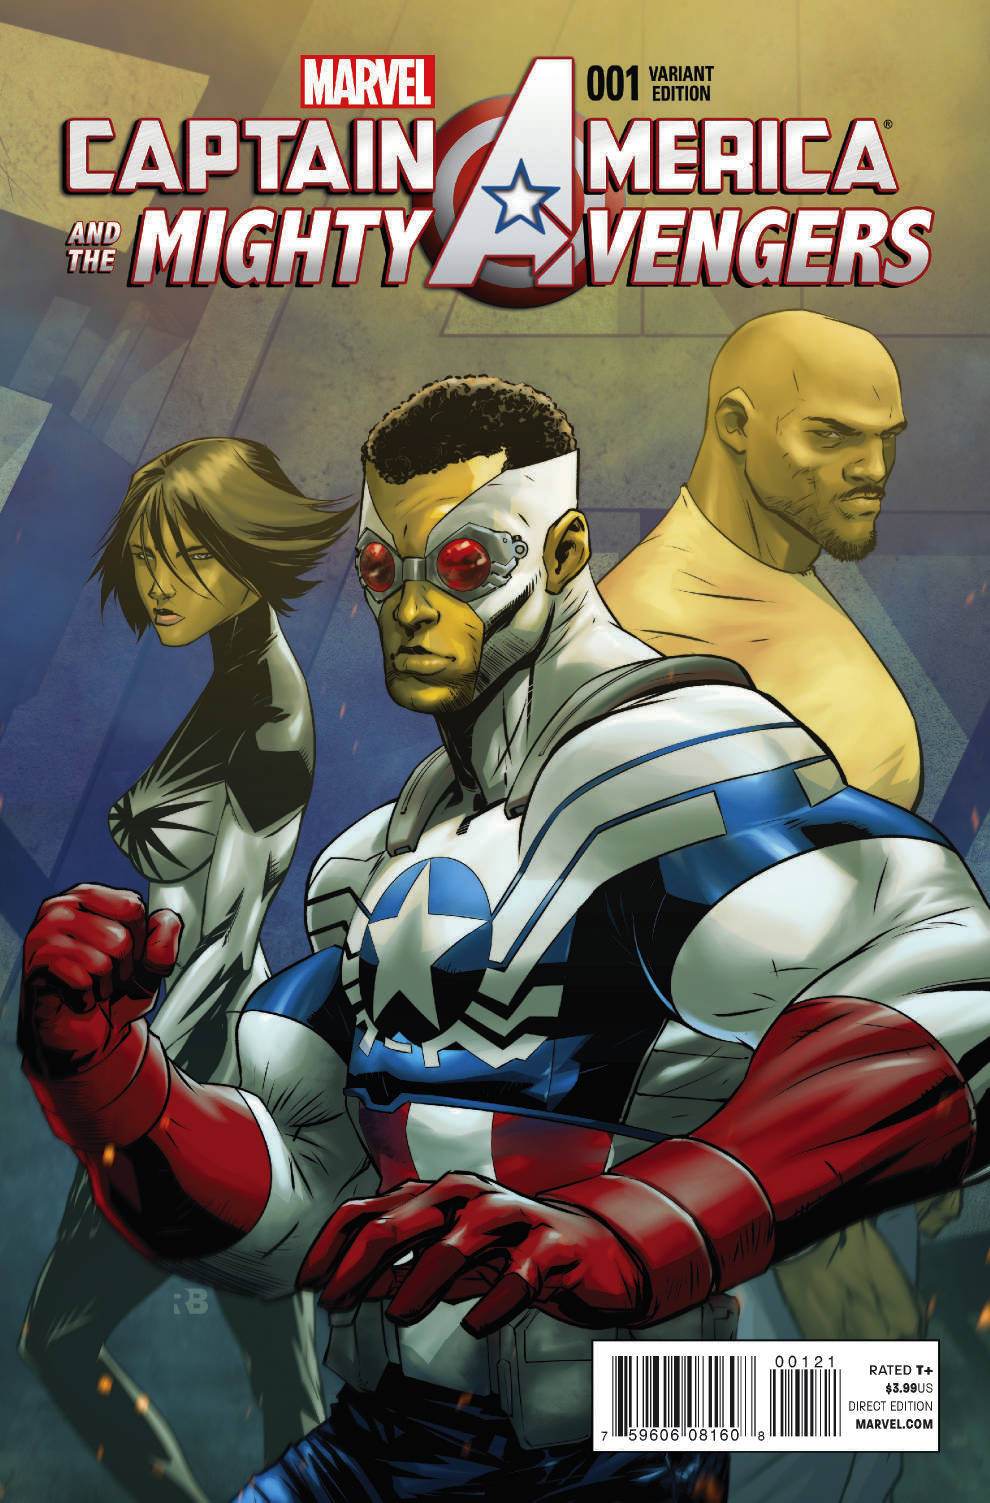 CAPTAIN AMERICA AND MIGHTY AVENGERS #1 BENJAMIN VAR AXIS